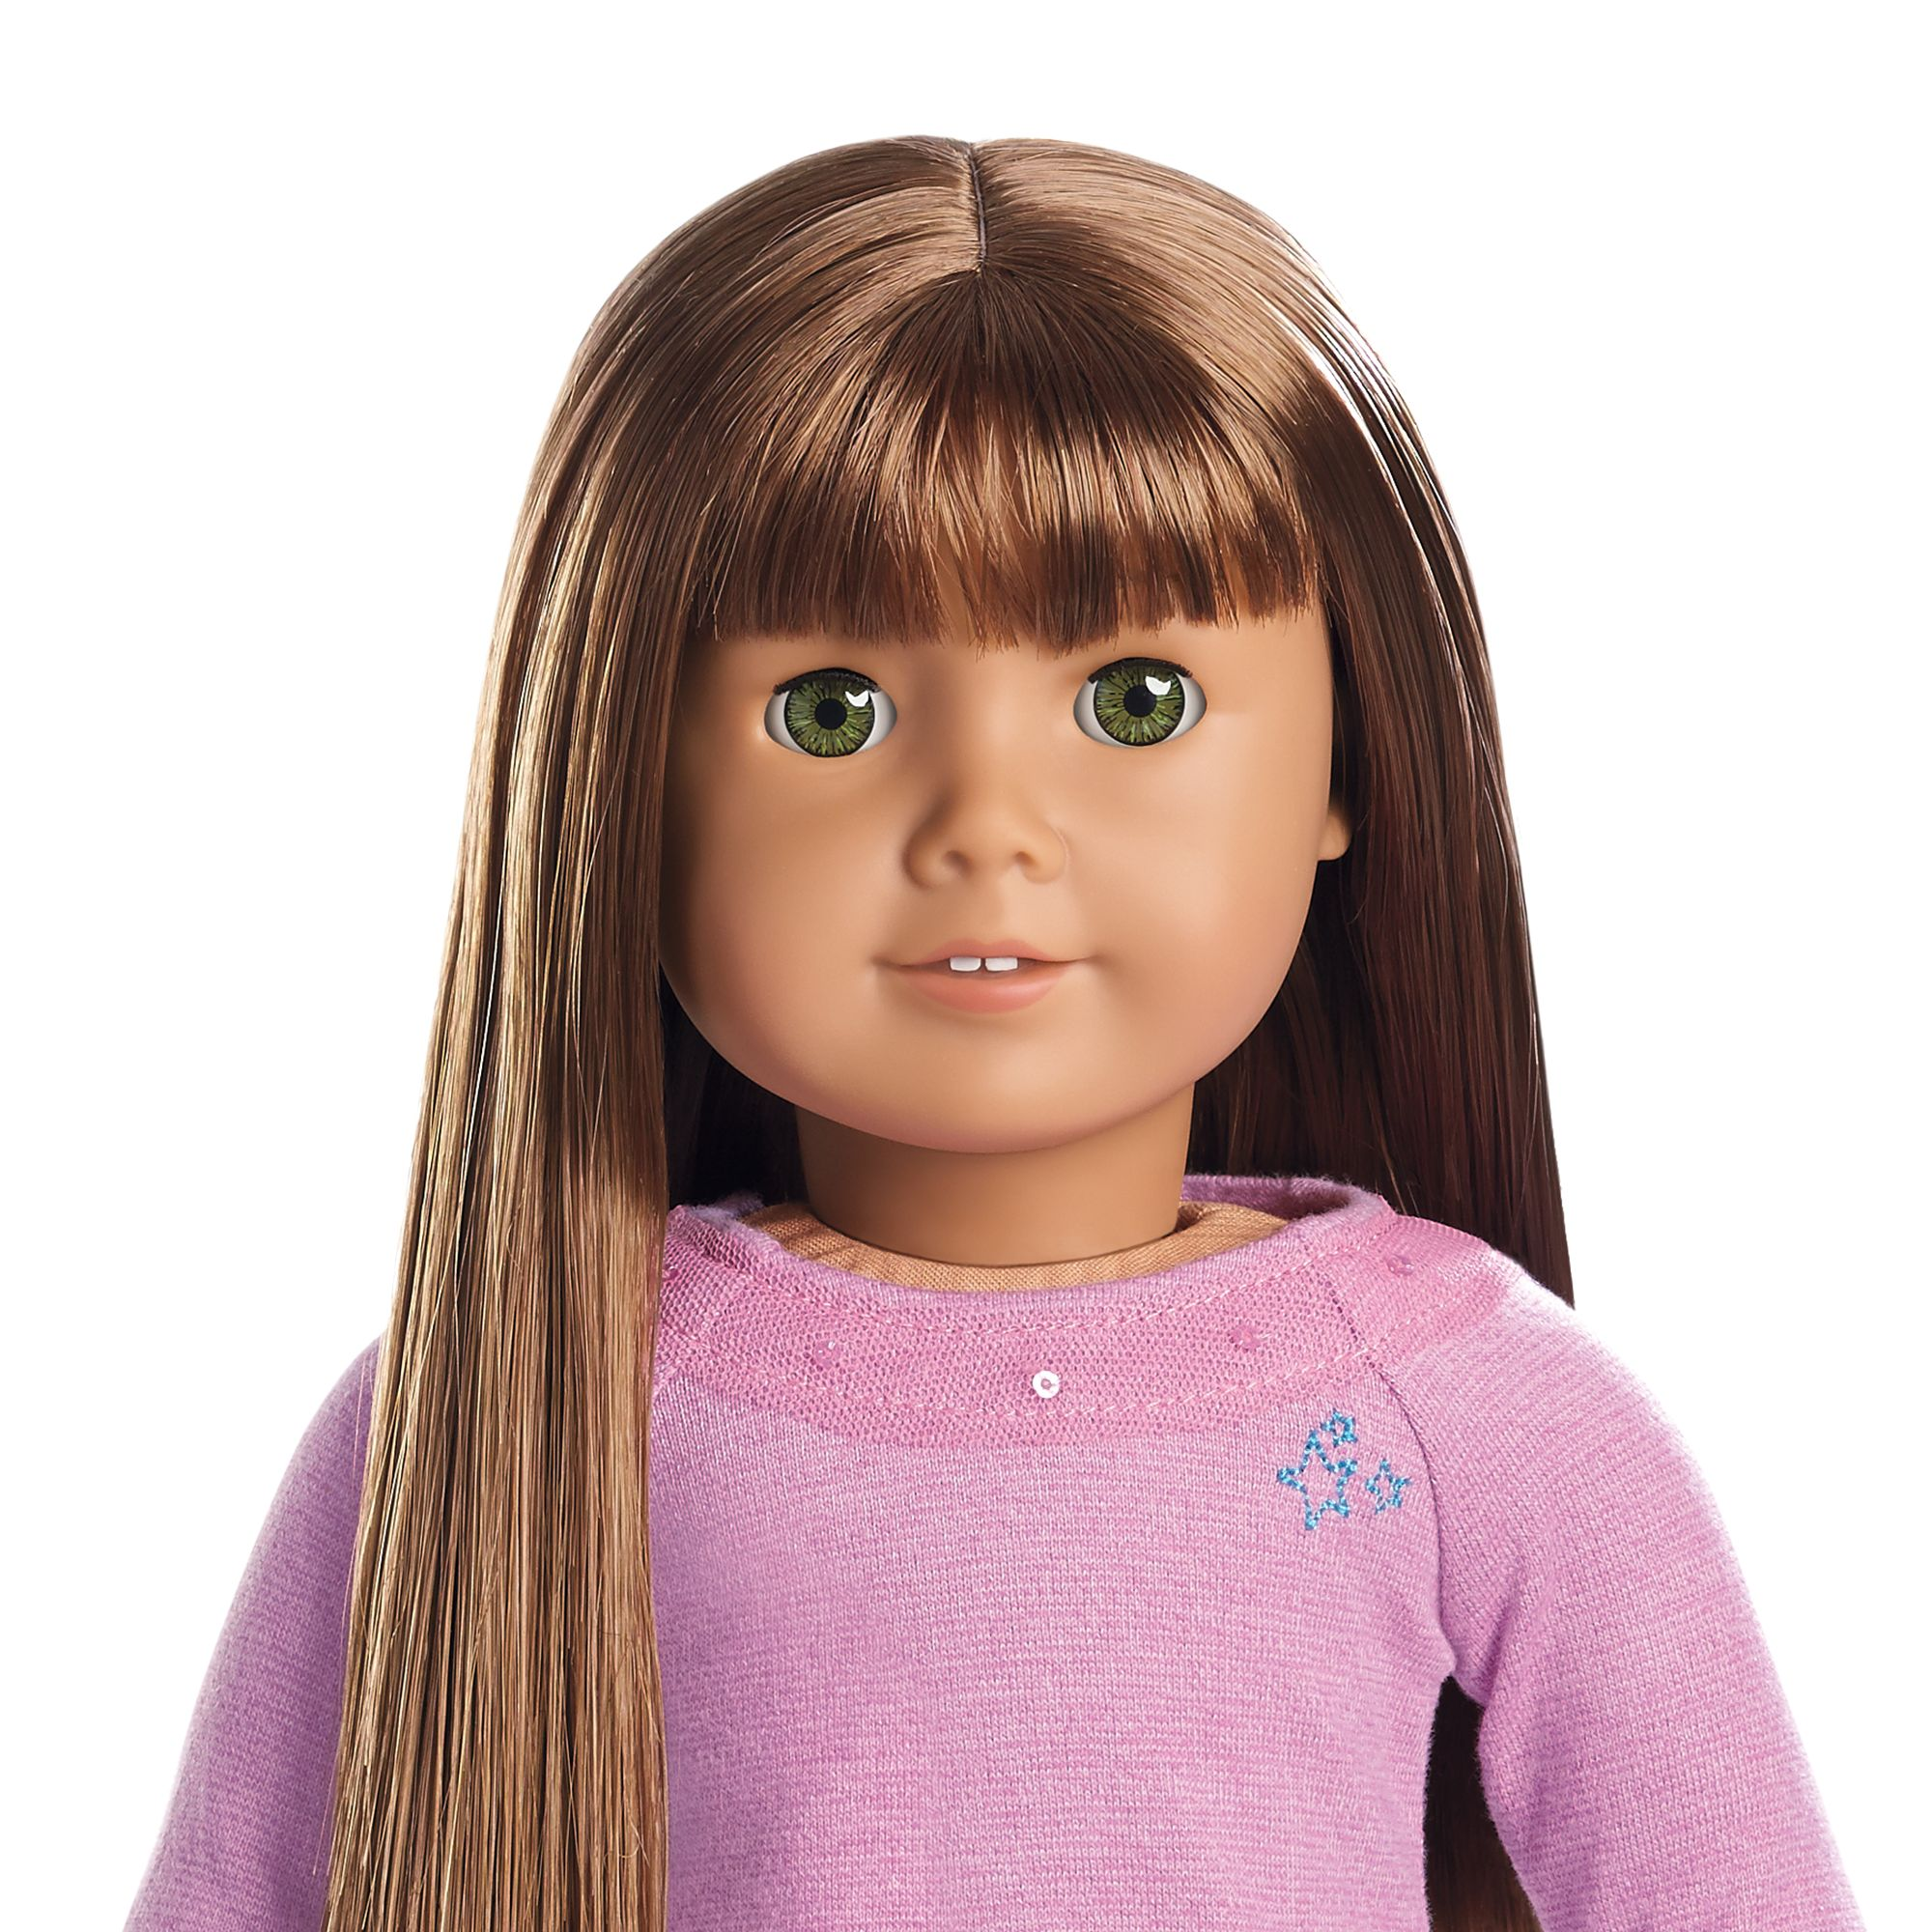 https://vignette4.wikia.nocookie.net/americangirl/images/a/ae/JLY43.jpg/revision/latest?cb=20150521110008 American Girl Doll Just Like You 39